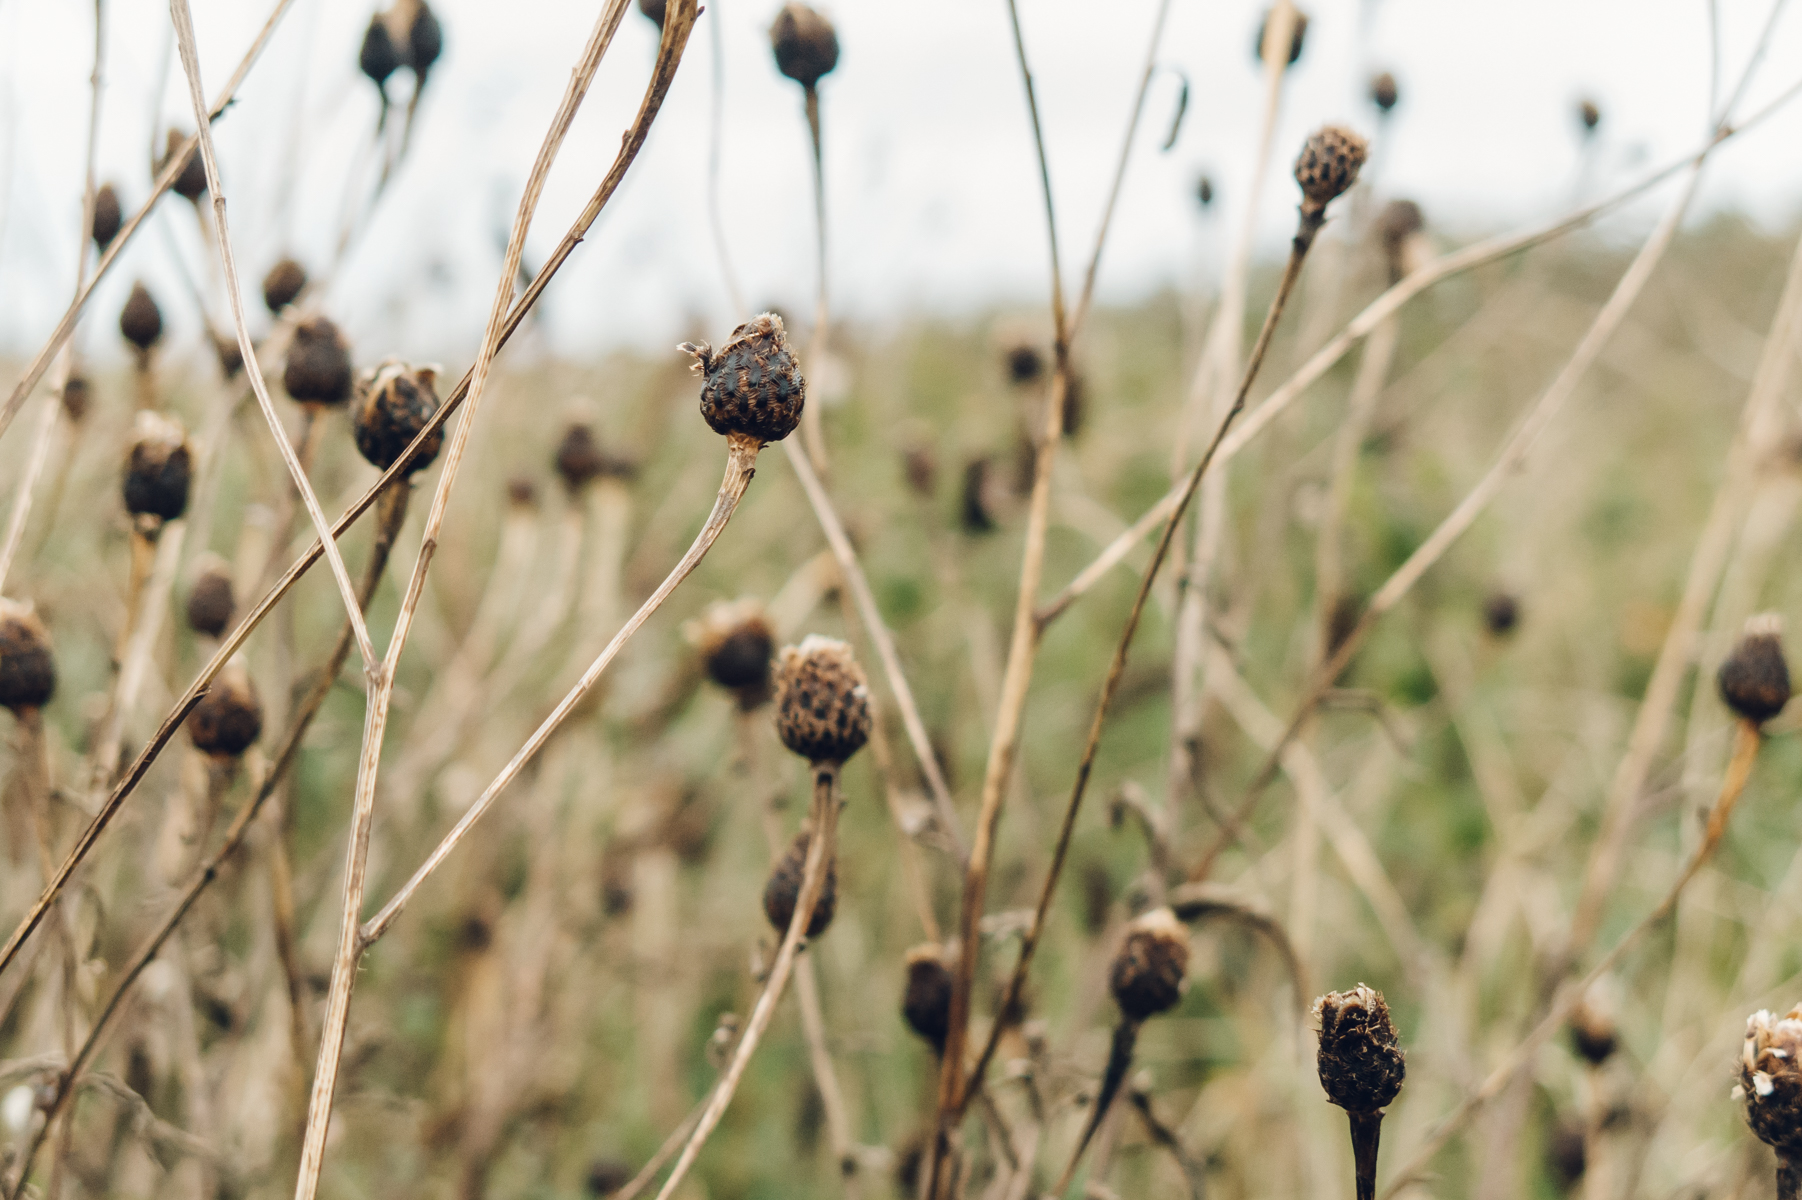 Seed heads and grasses.